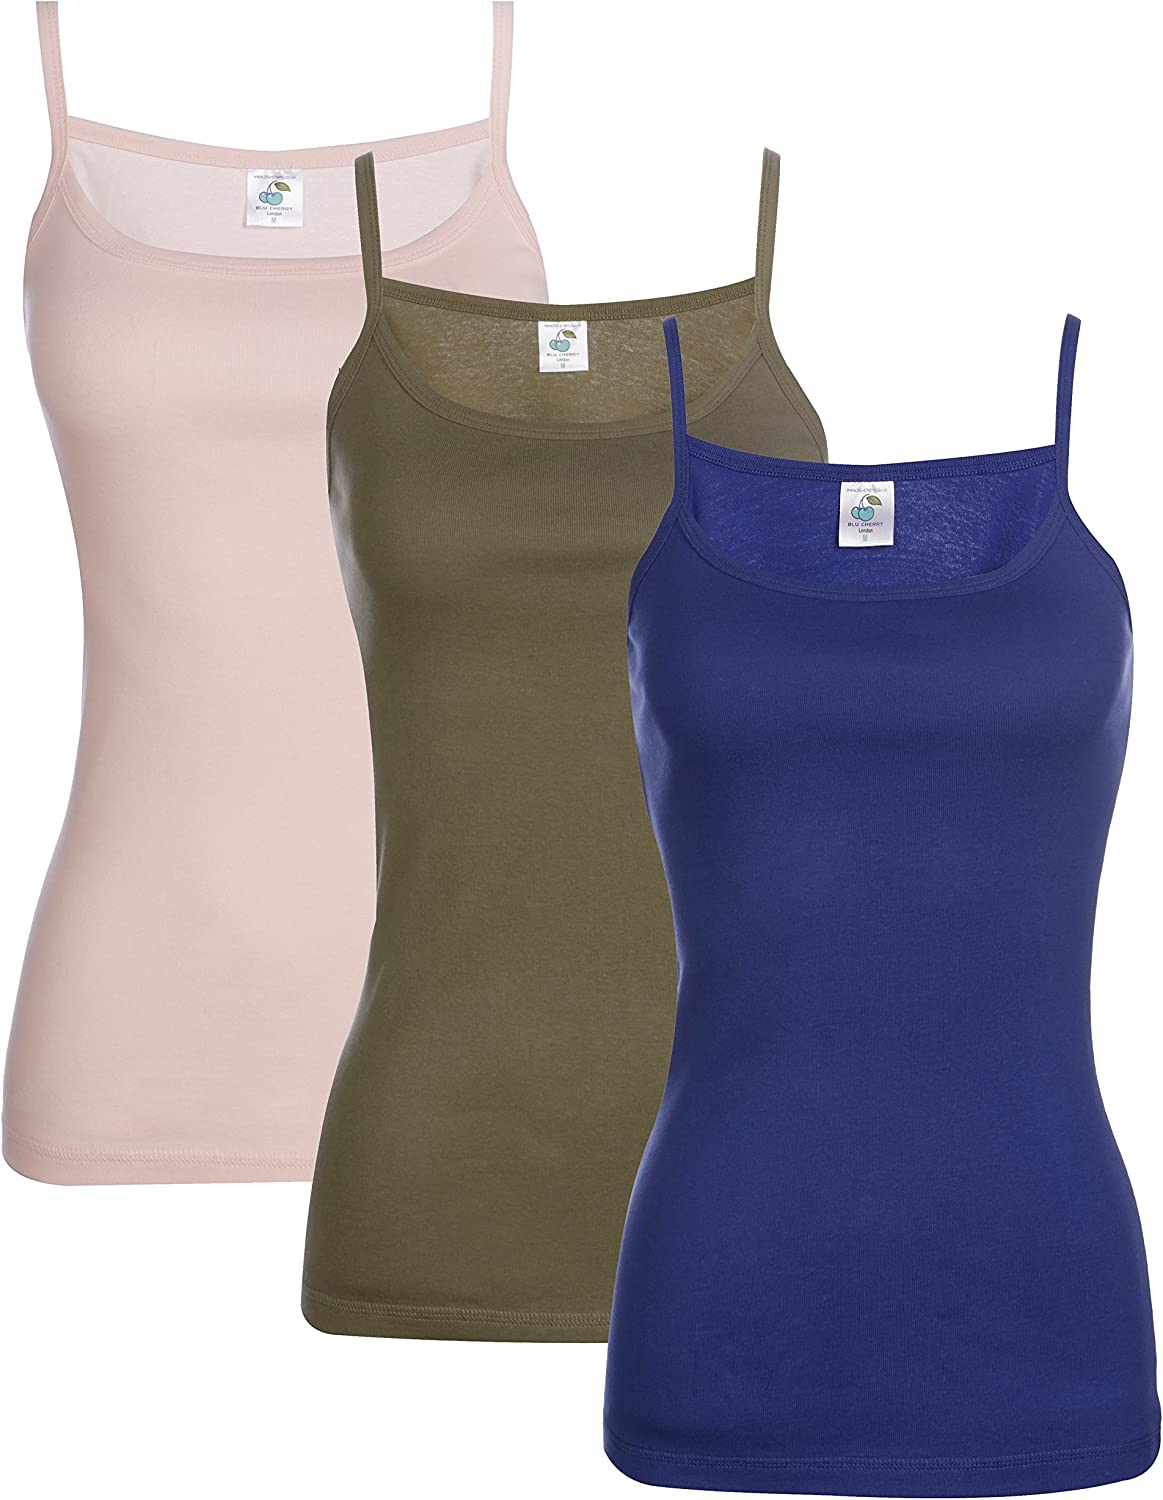 Slim Fit Blu Cherry 3 Pack Womens Plain Cotton Strappy Camisole Tank Top T Shirt Multi Pack